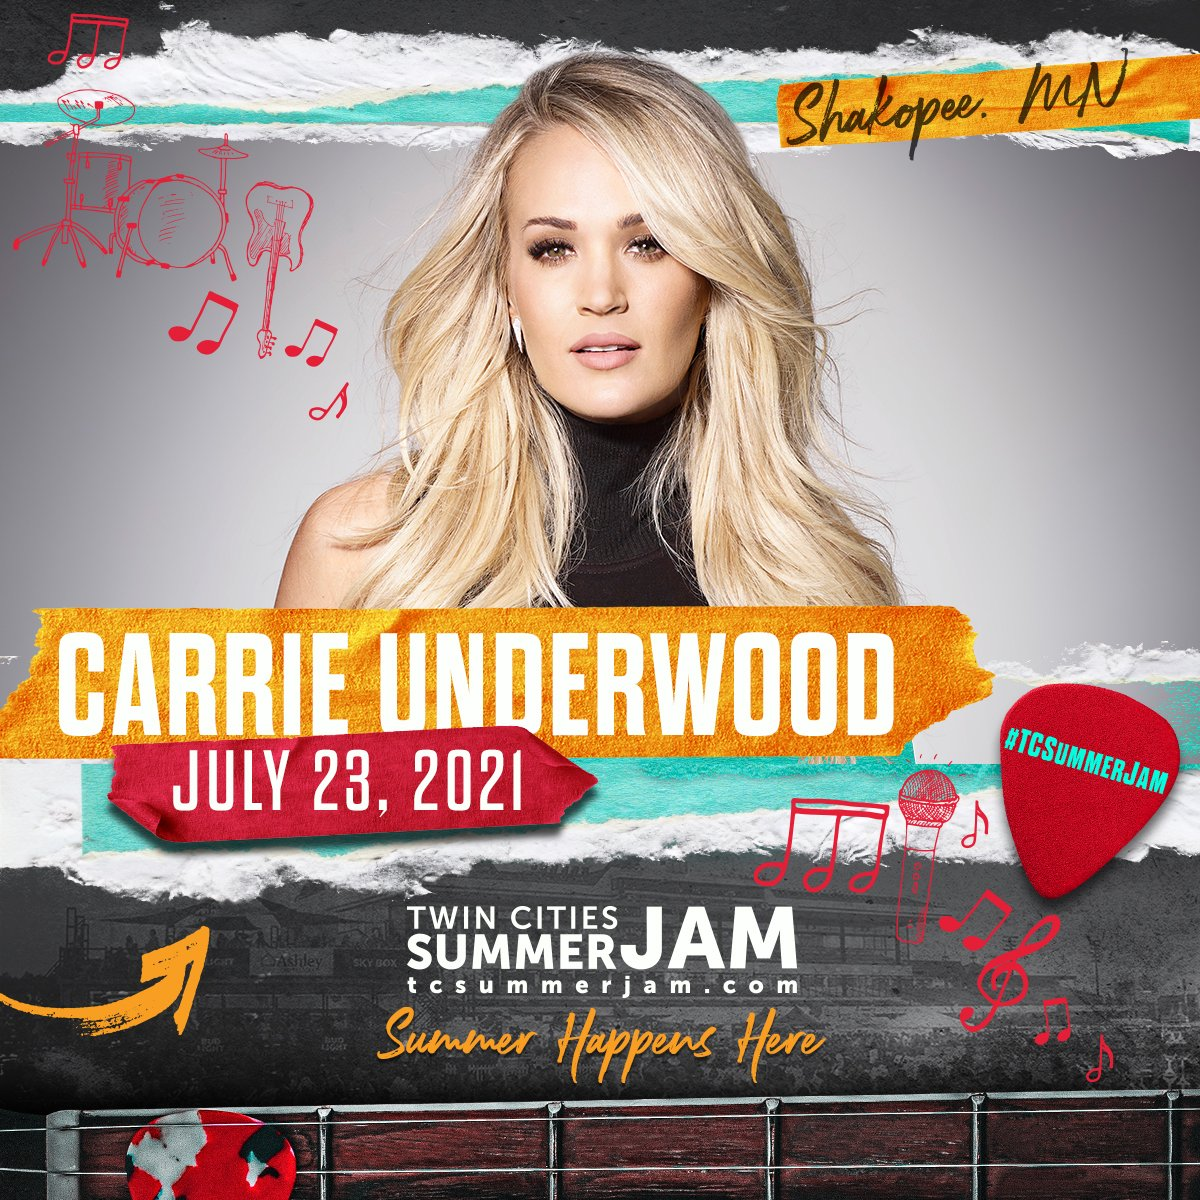 Looking forward to performing at @TCSummerJam in Shakopee, MN this Friday! https://t.co/8YXPLEc7S6 https://t.co/ezNCjjGJ44